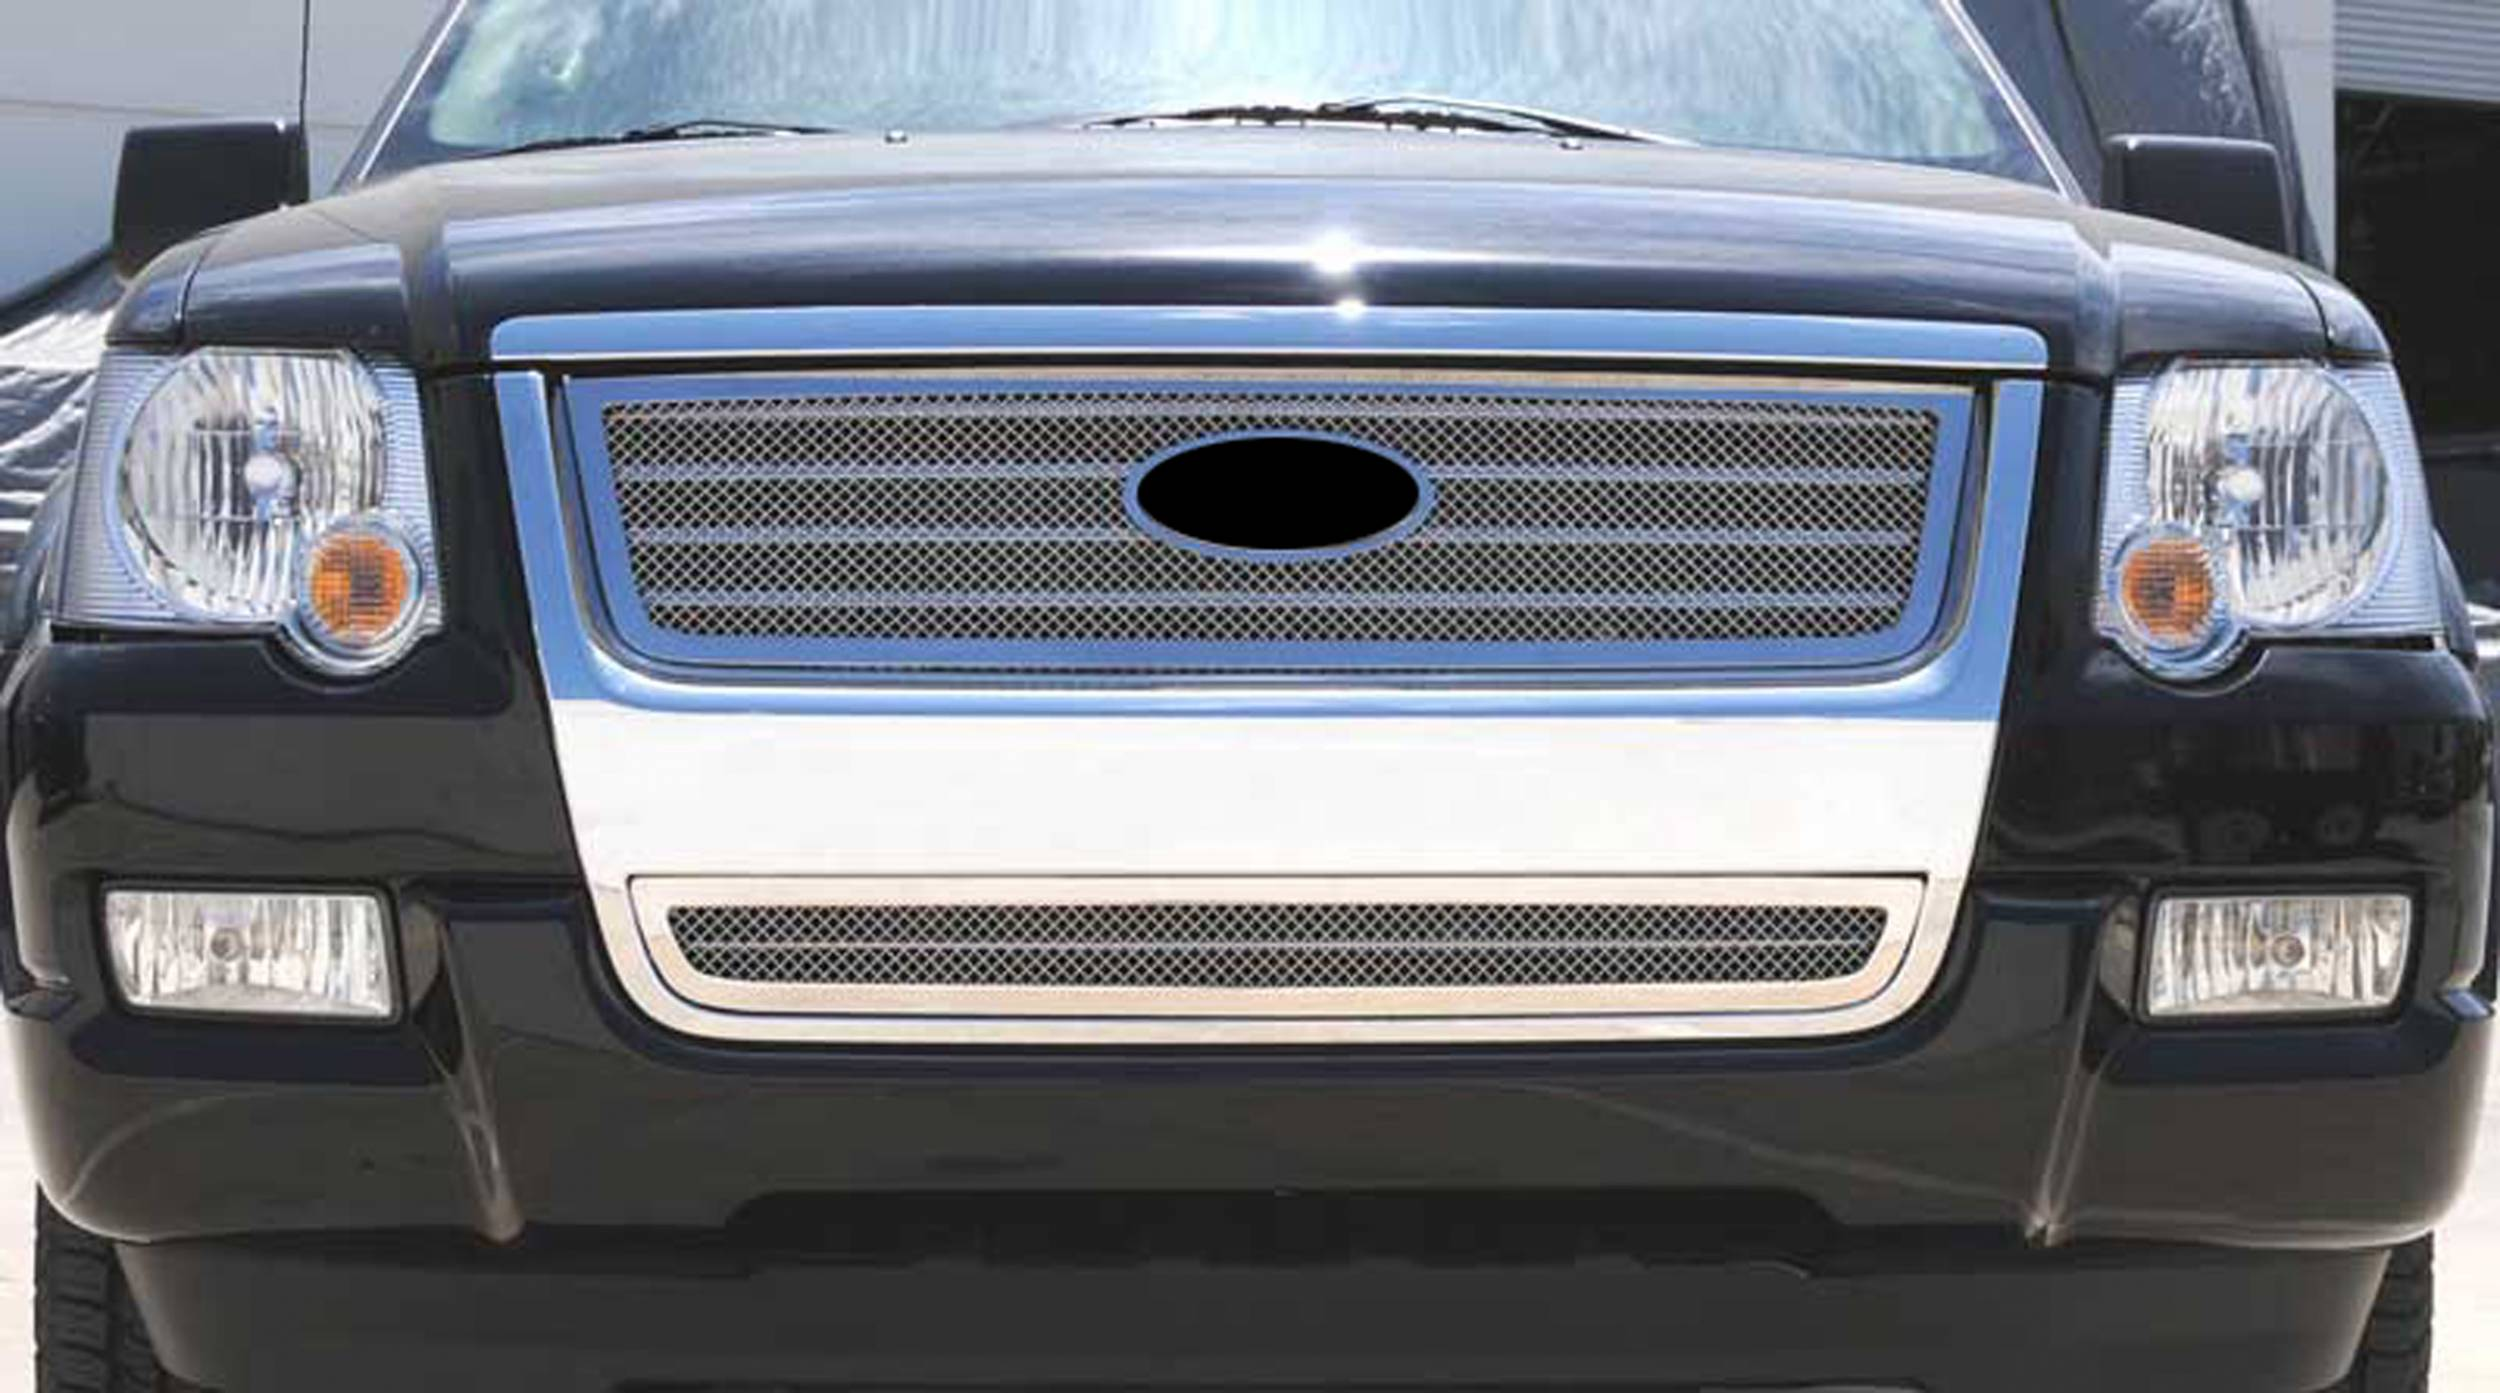 T-REX Grilles - 2006-2010 Explorer XLT, Limited Upper Class Series Main Grille, Polished, 1 Pc, Overlay - PN #54659